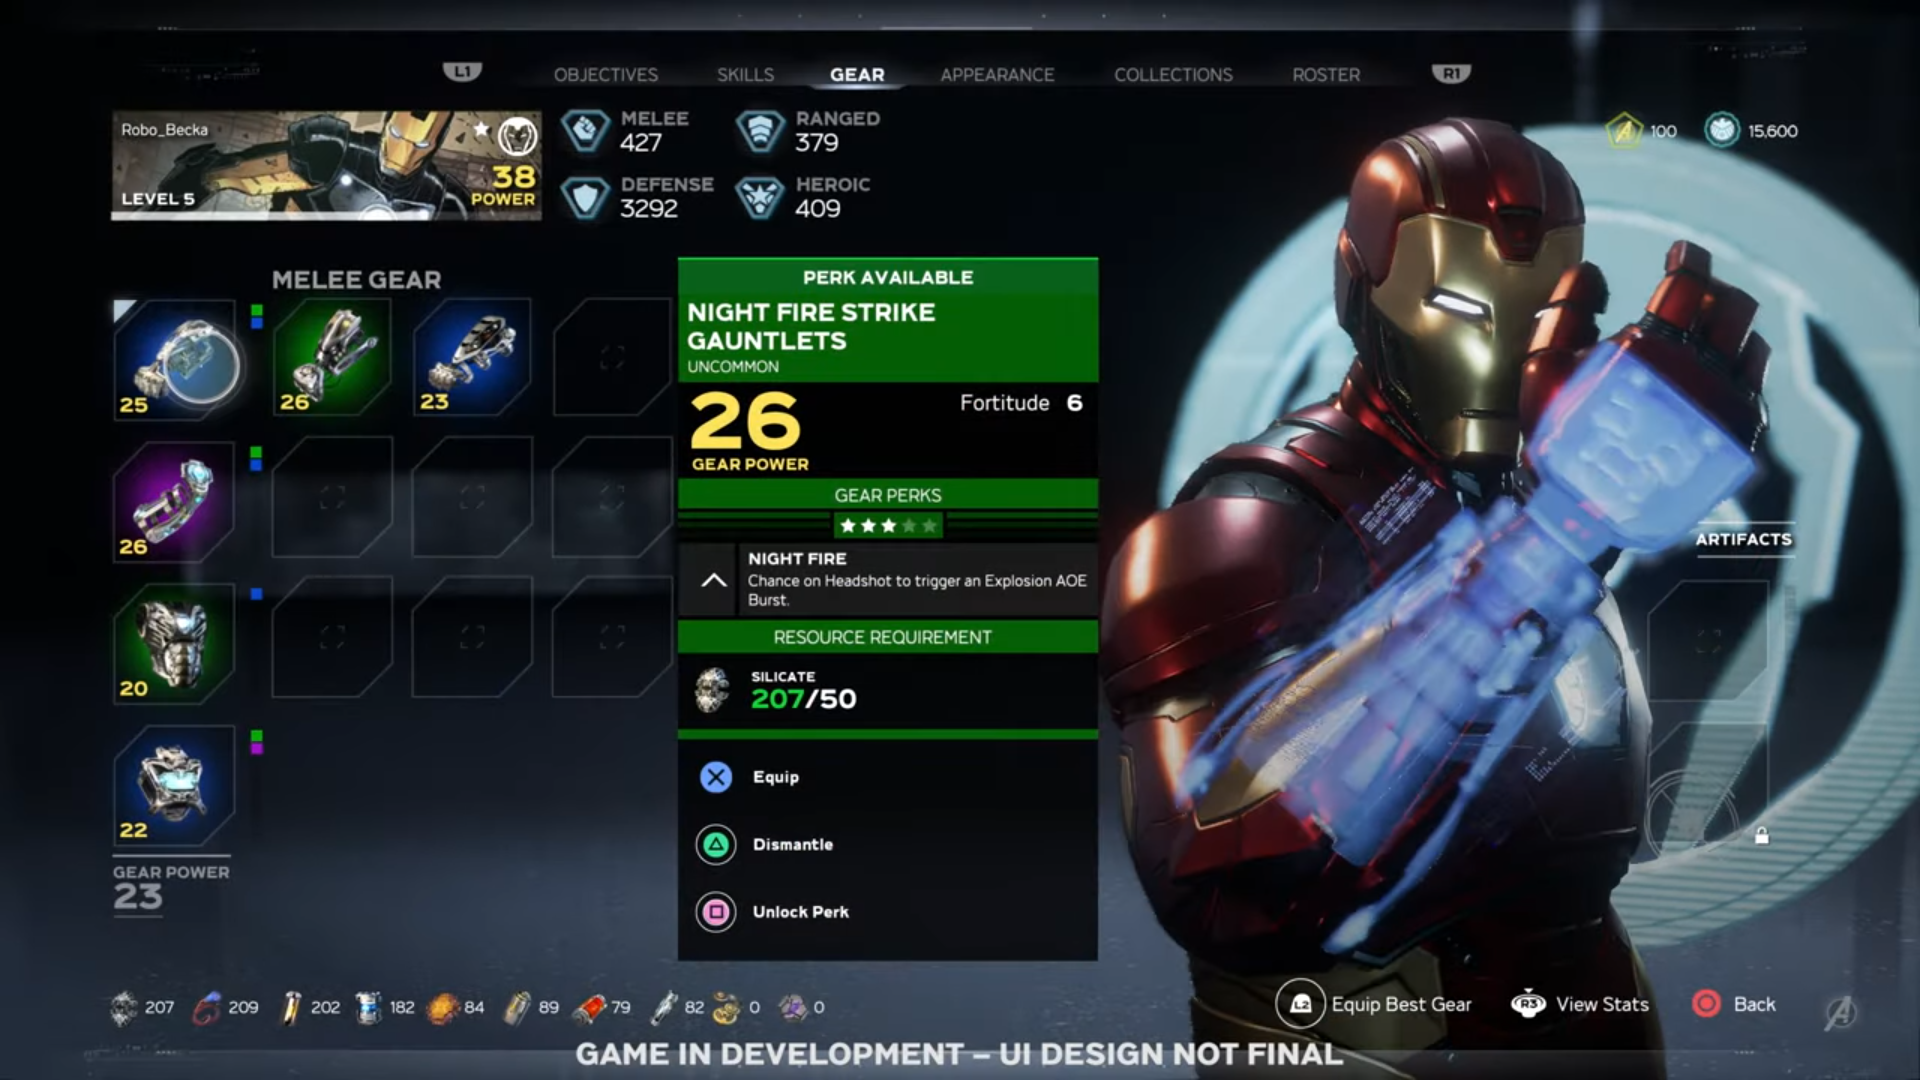 Marvel's Avengers Overview Gives Us First Look at Hub and Inventory